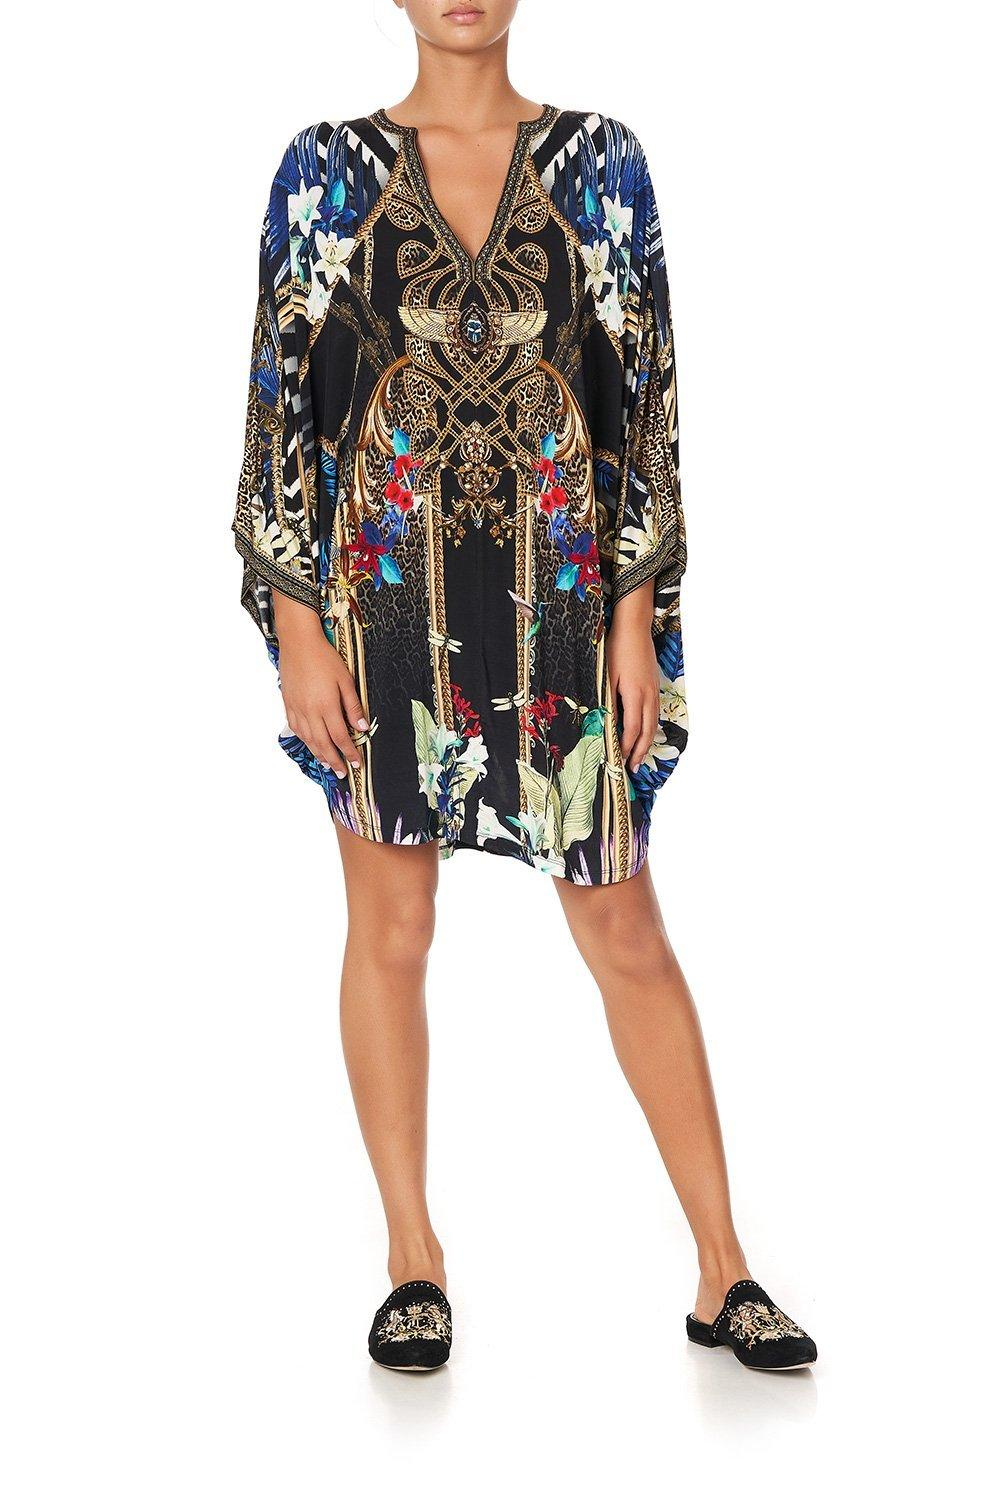 Rainbow Room Jersey Short Kaftan with Curved Hem KAFTAN CAMILLA OS Multi